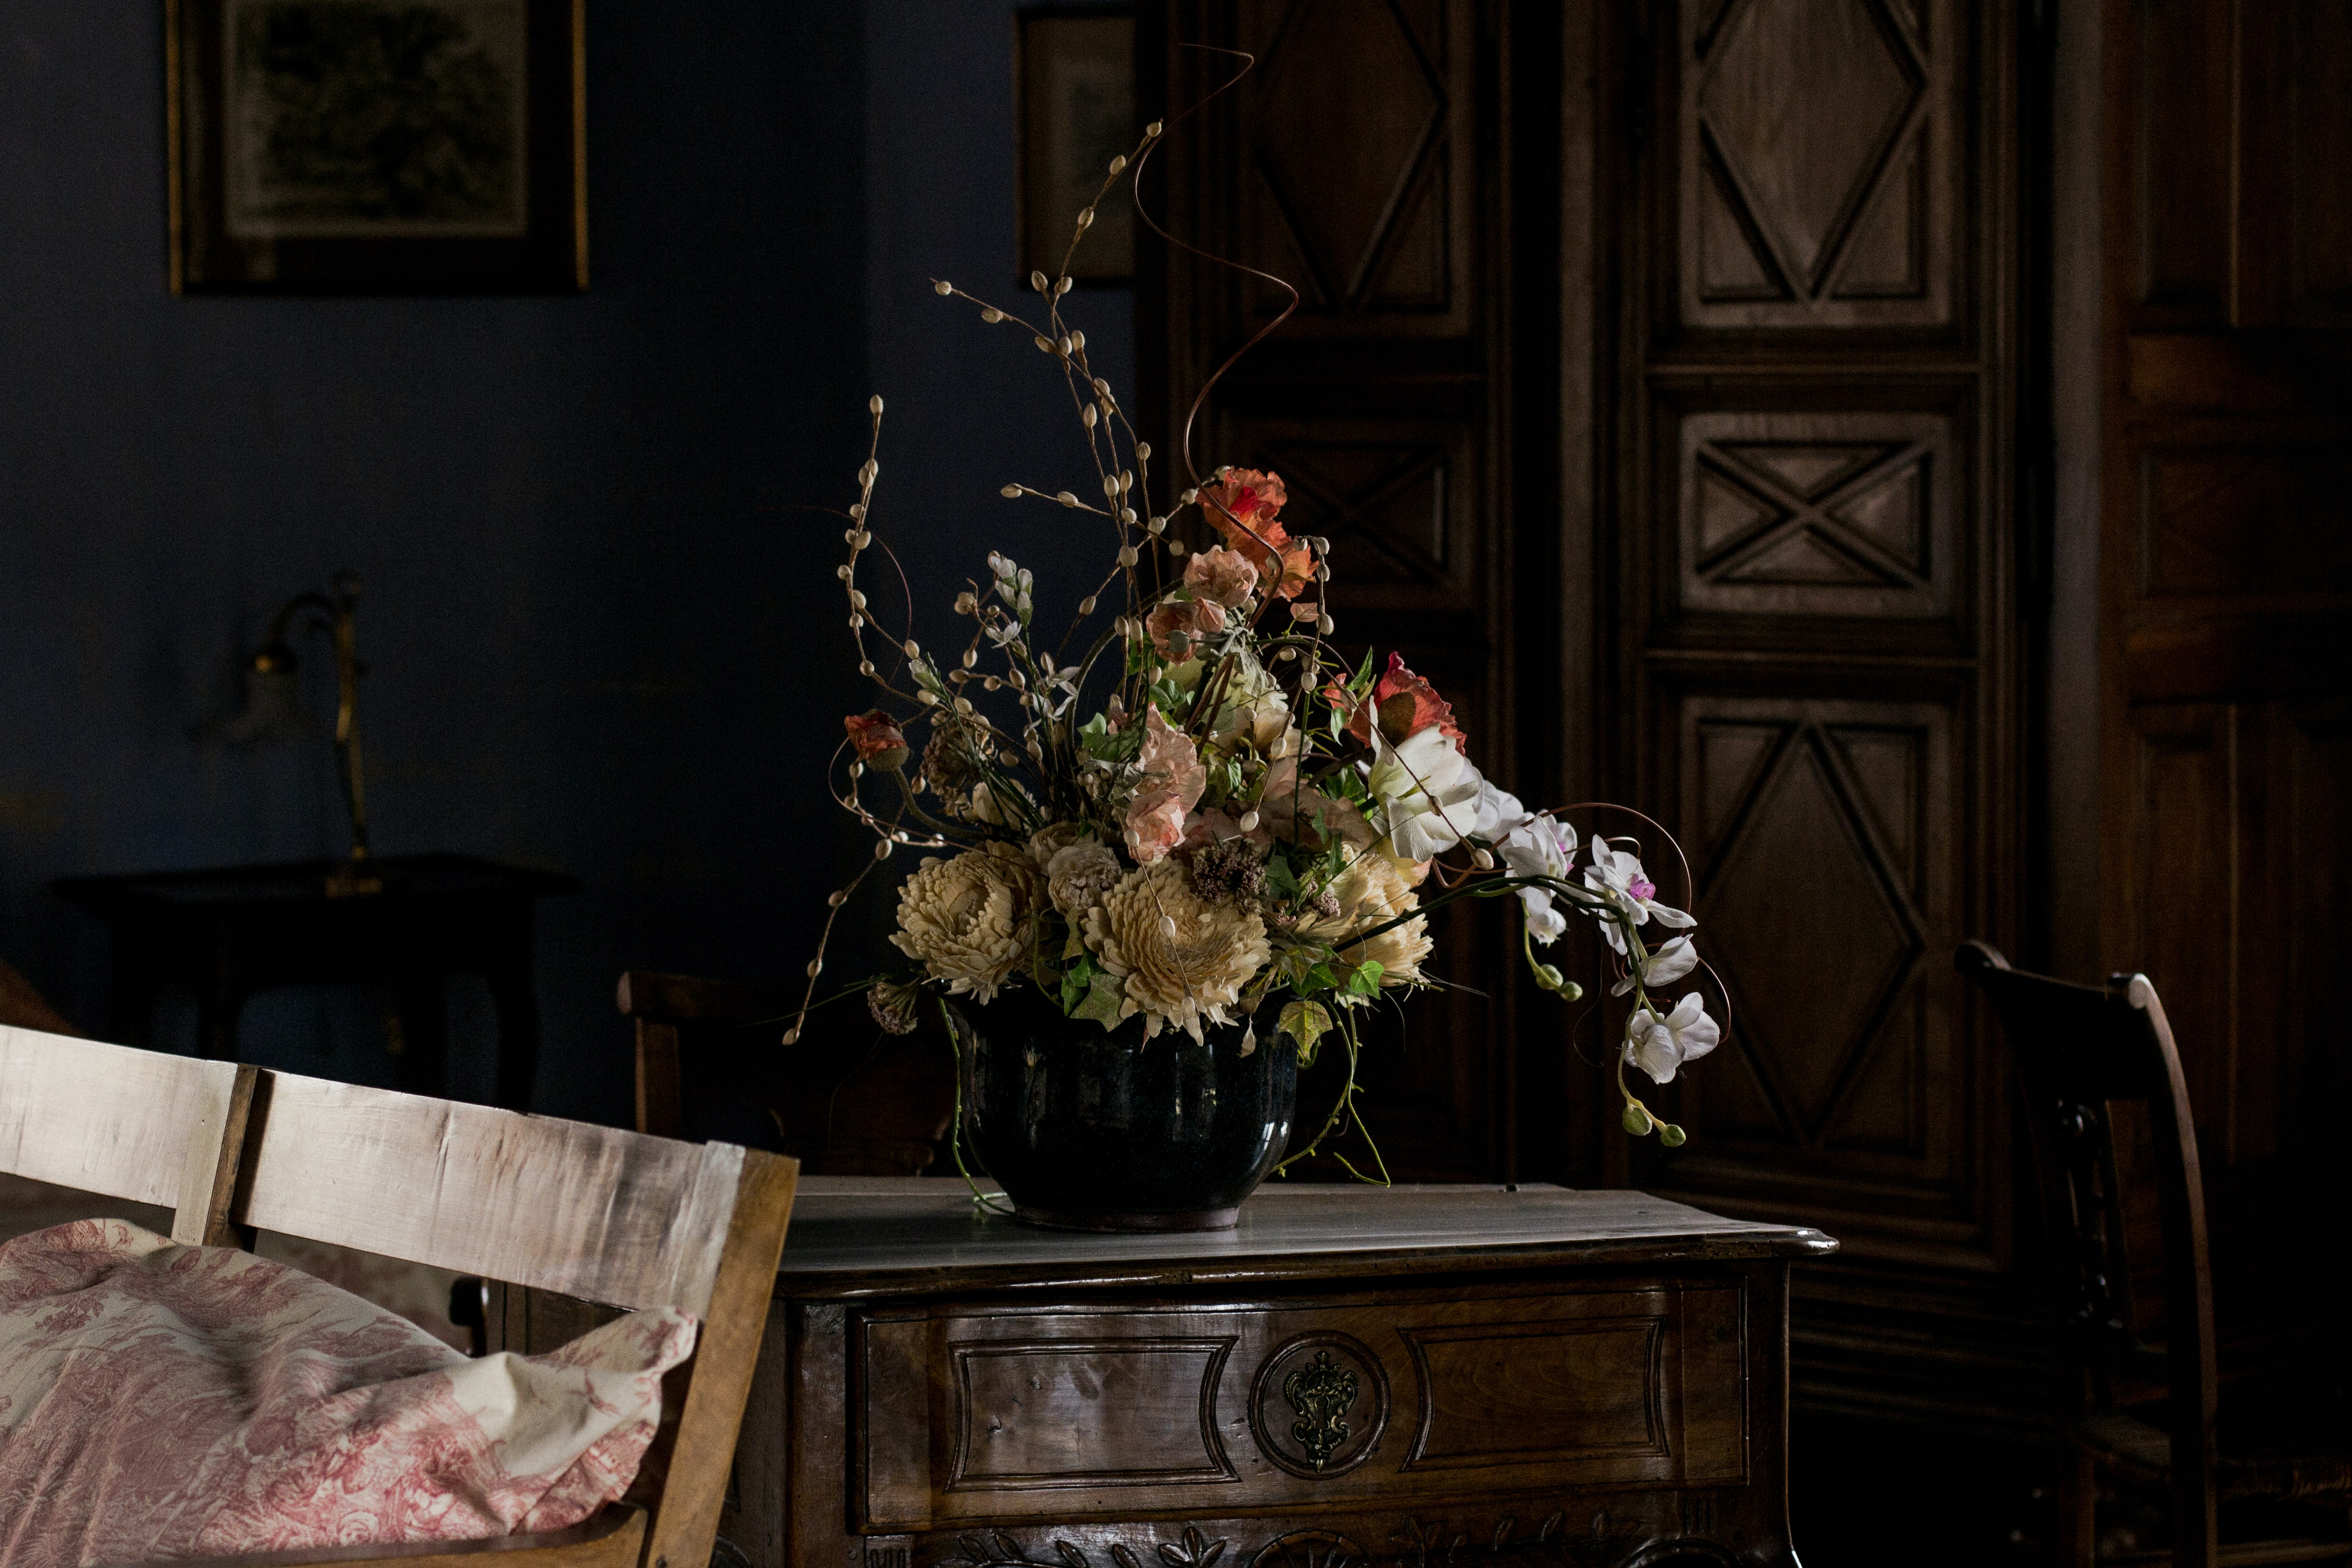 A black vase with various kinds of flowers and catkins on an elegant wooden cabinet